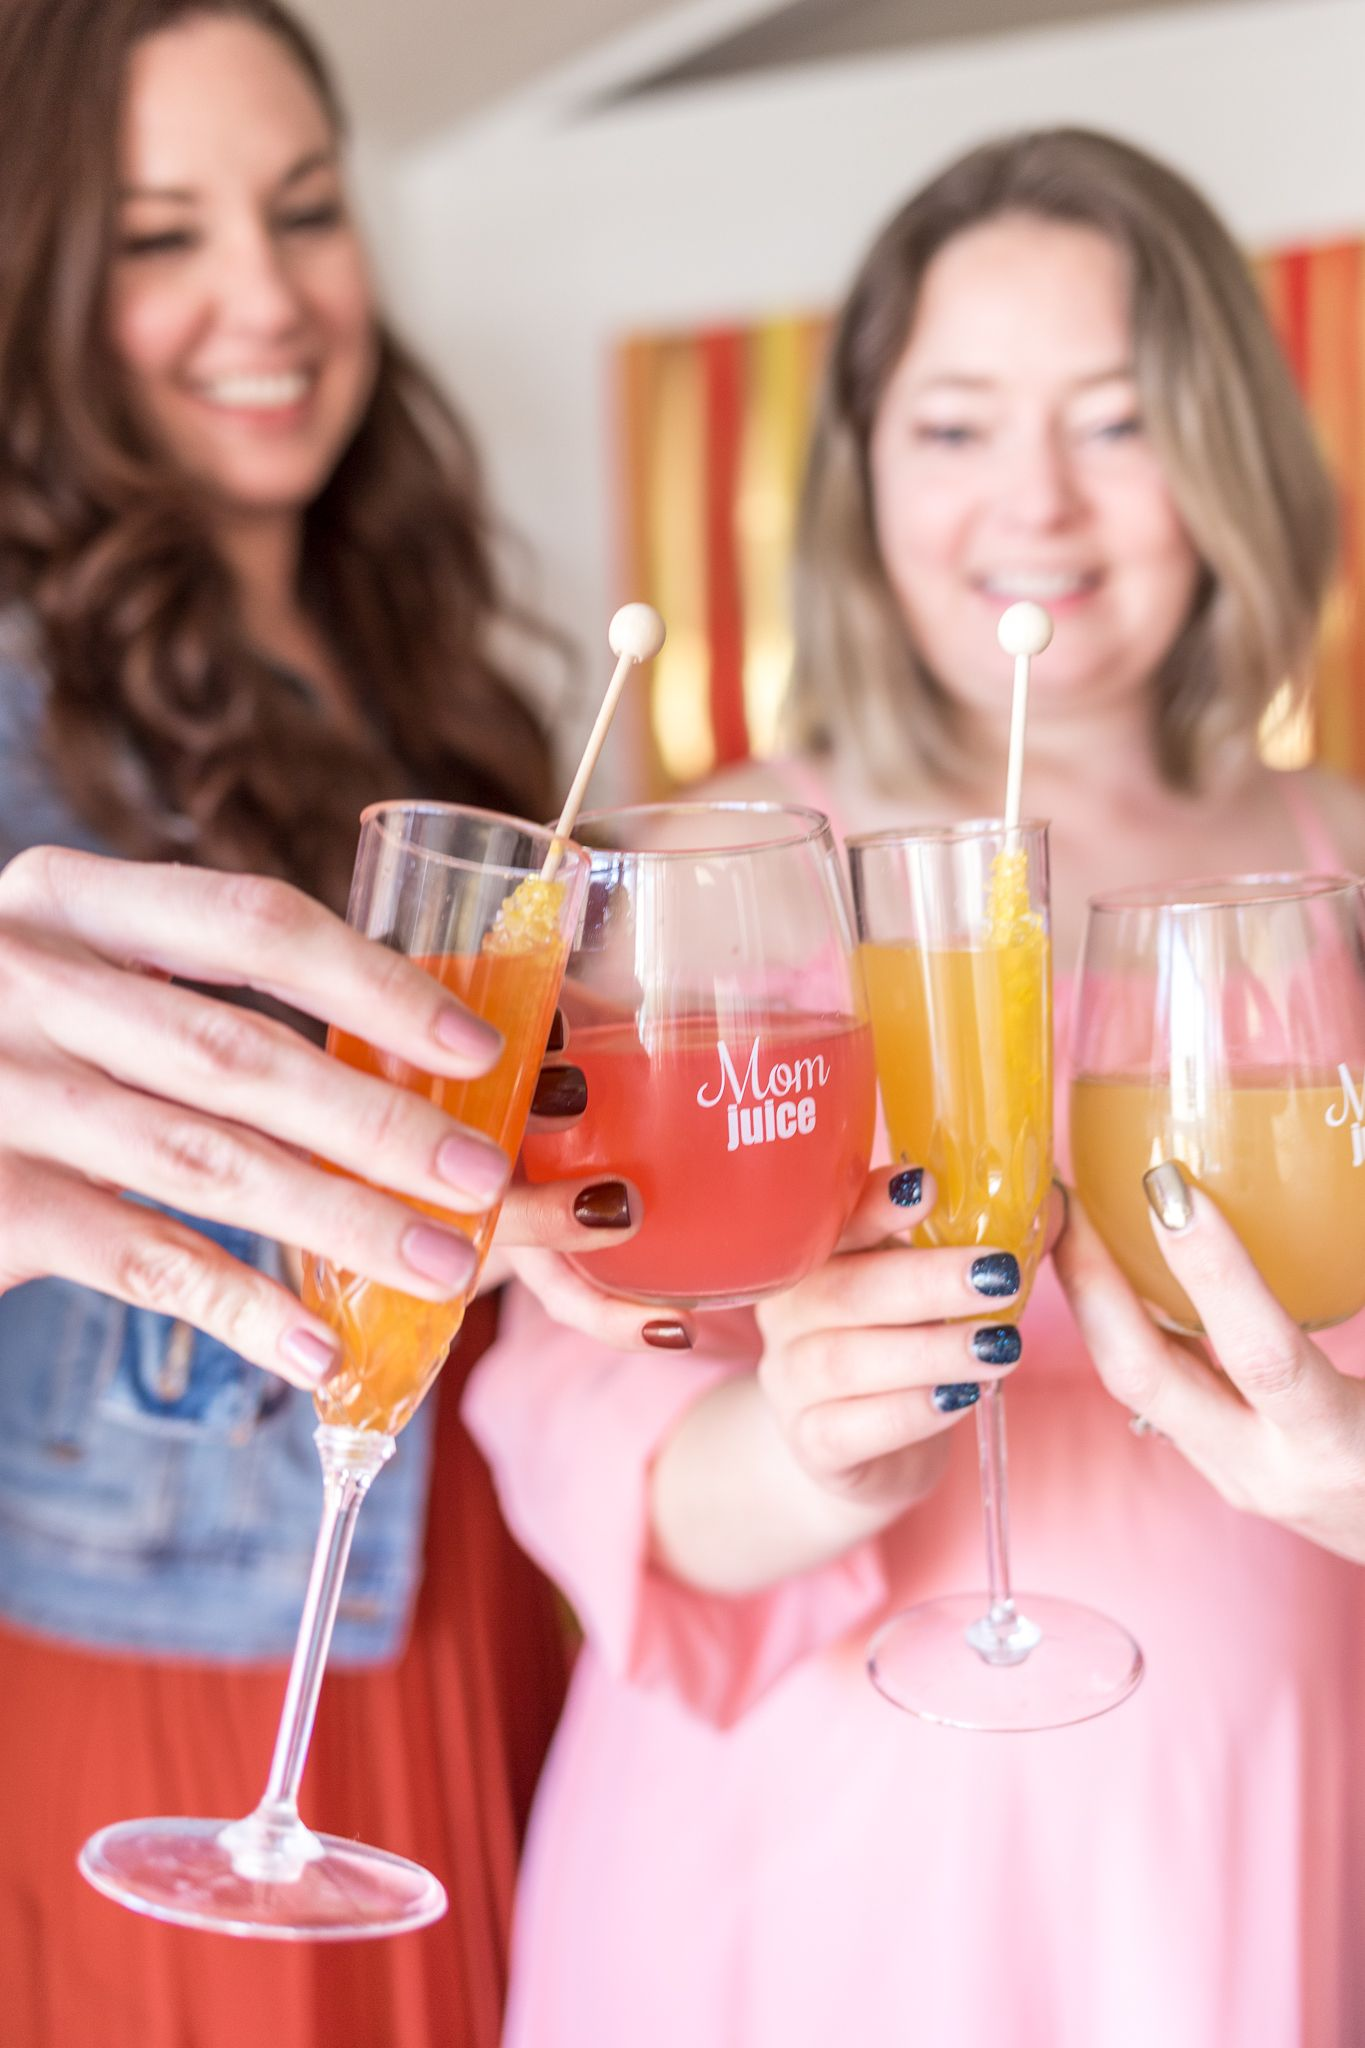 Cheers to the Mom-to-be! ☀️ Sunshine Baby Shower Ideas #flavoredlemonade